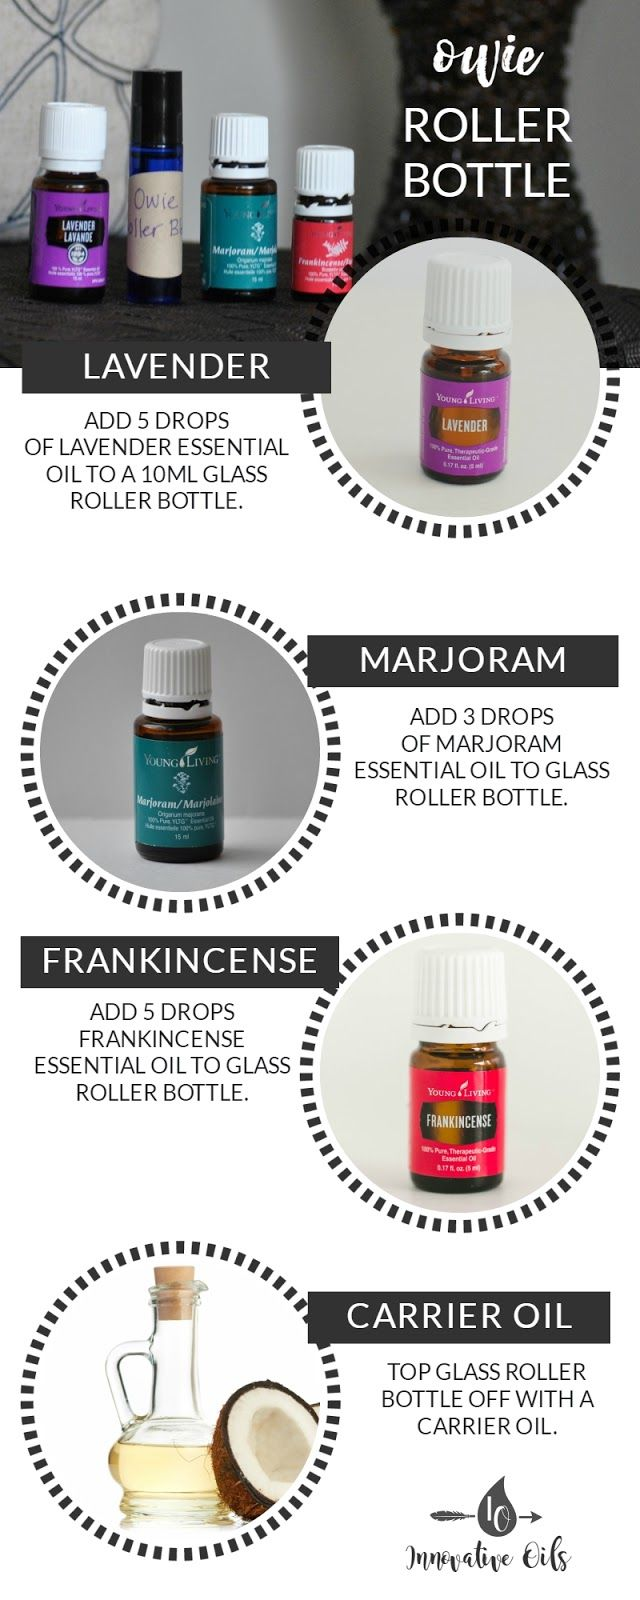 DIY OWIE ROLLER BOTTLE